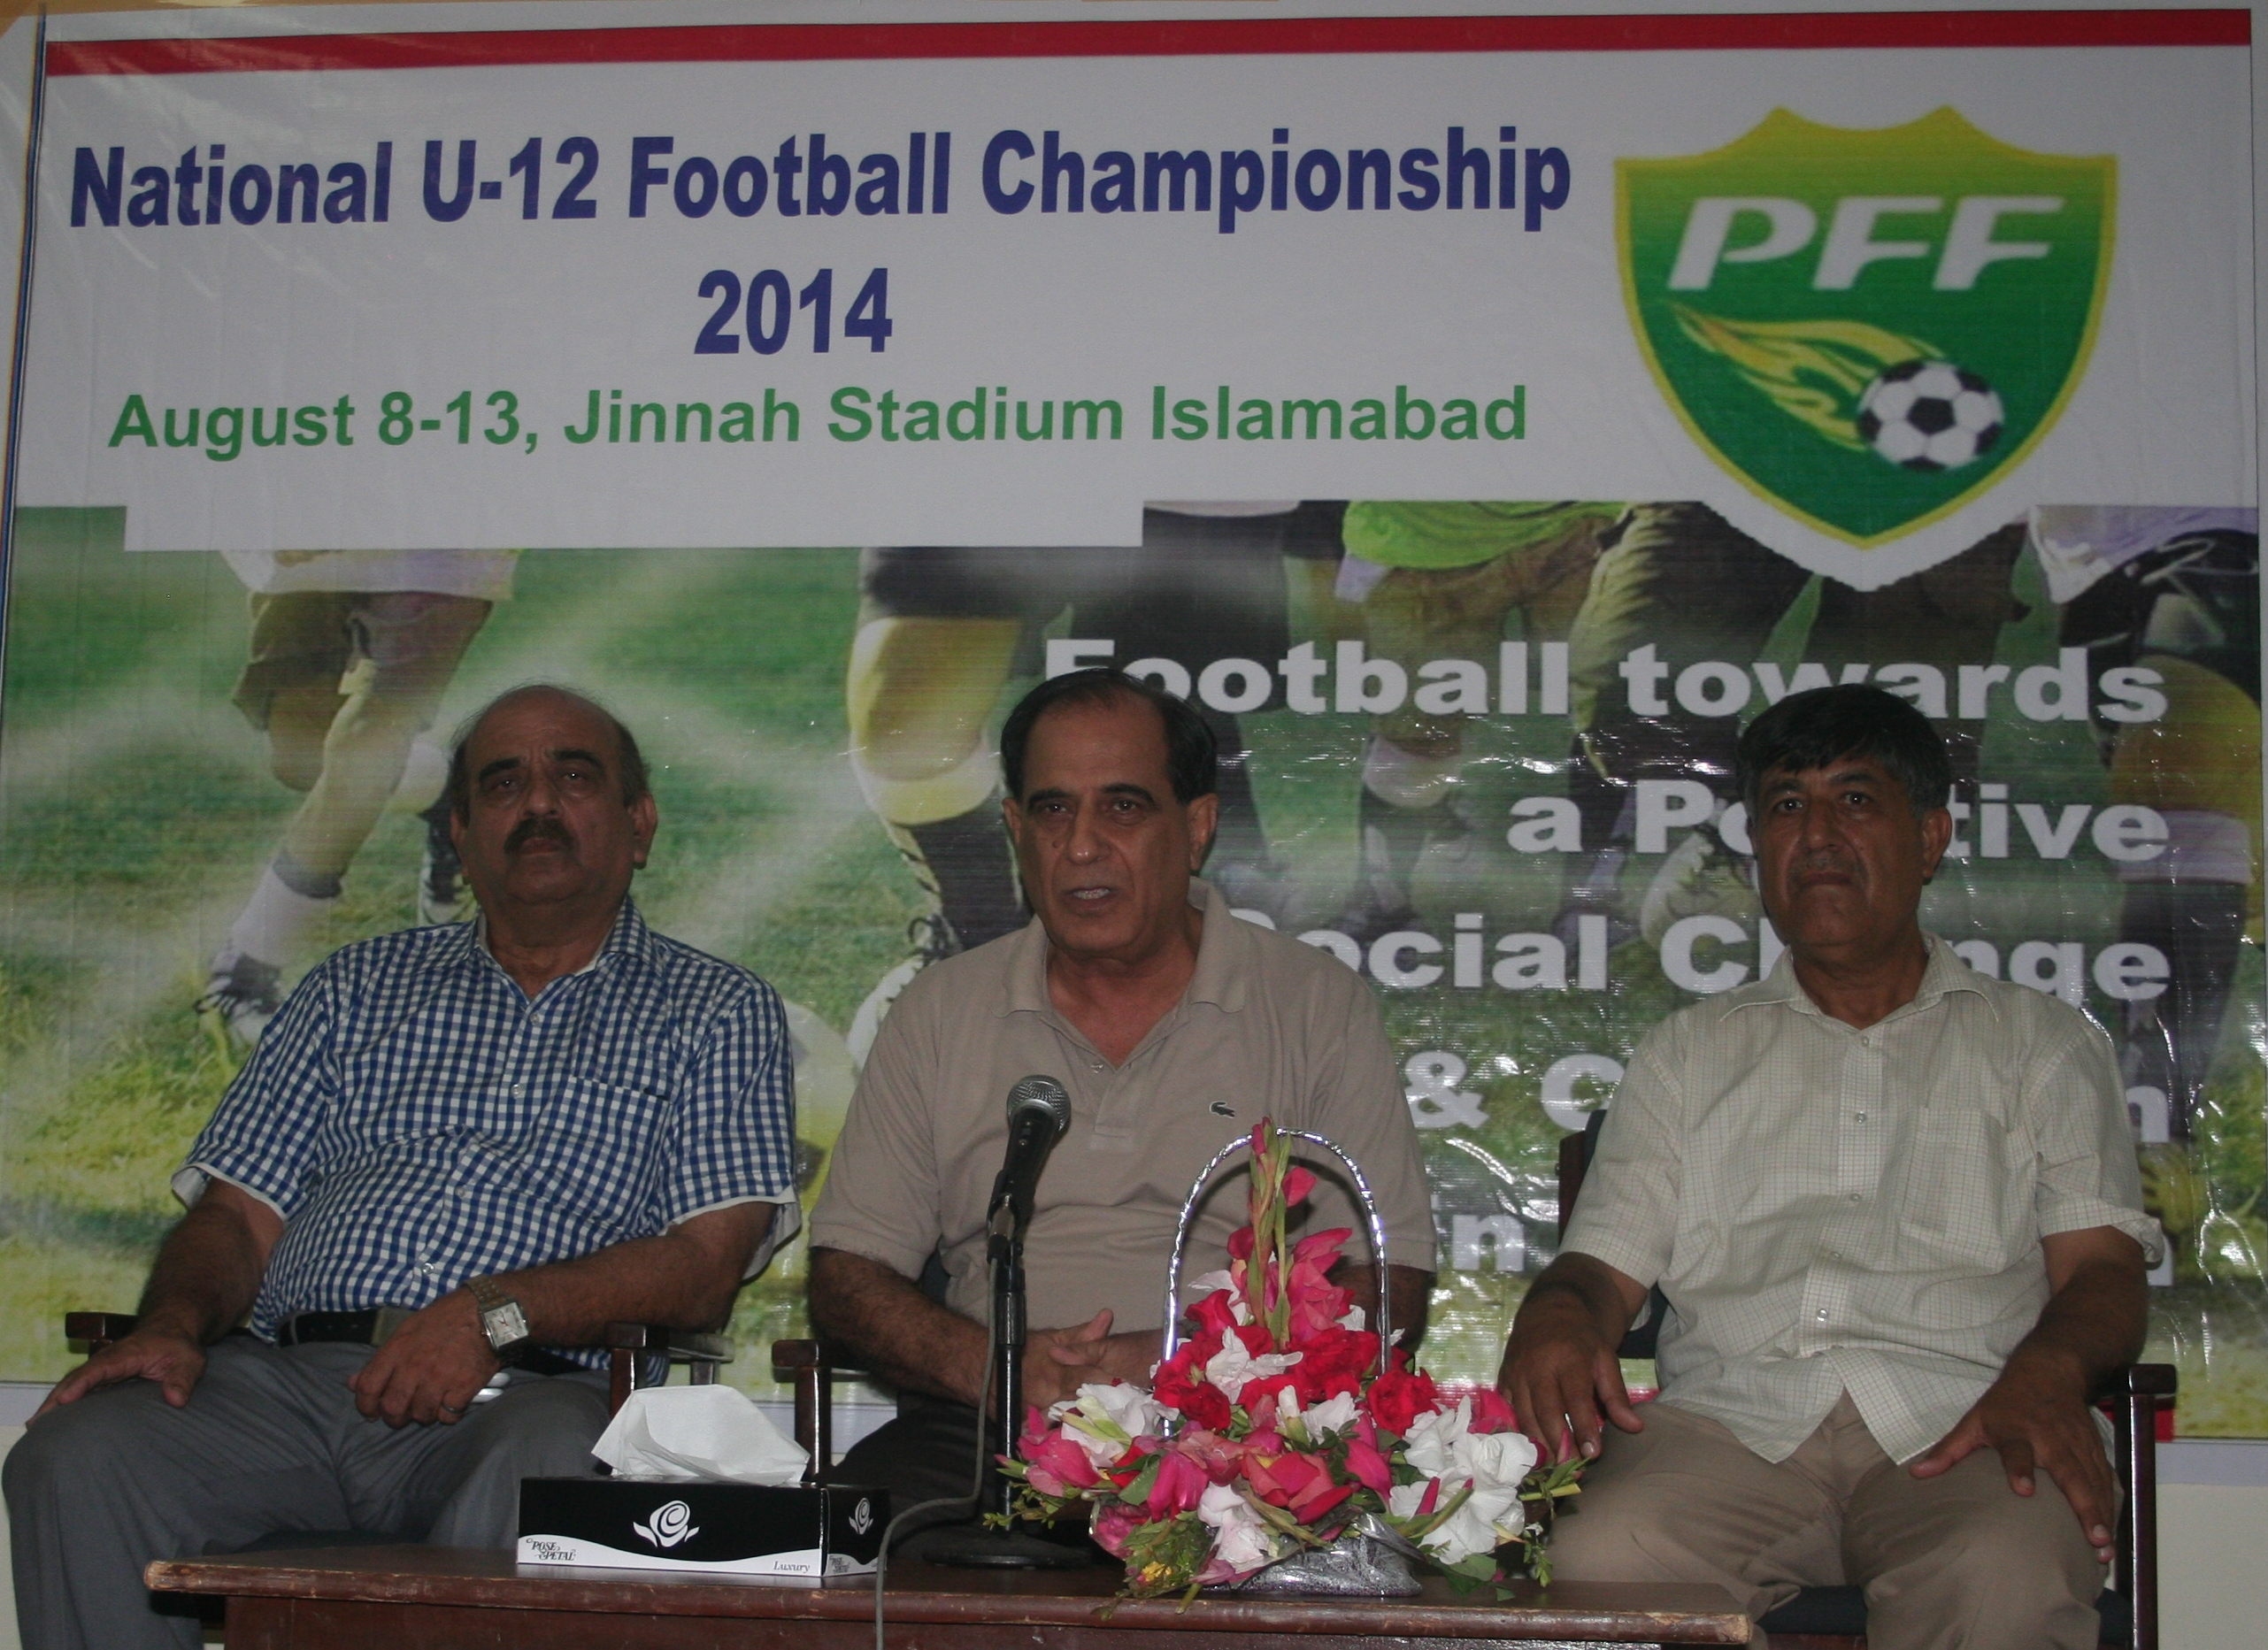 U-12 Championship set to start from today in Islamabad